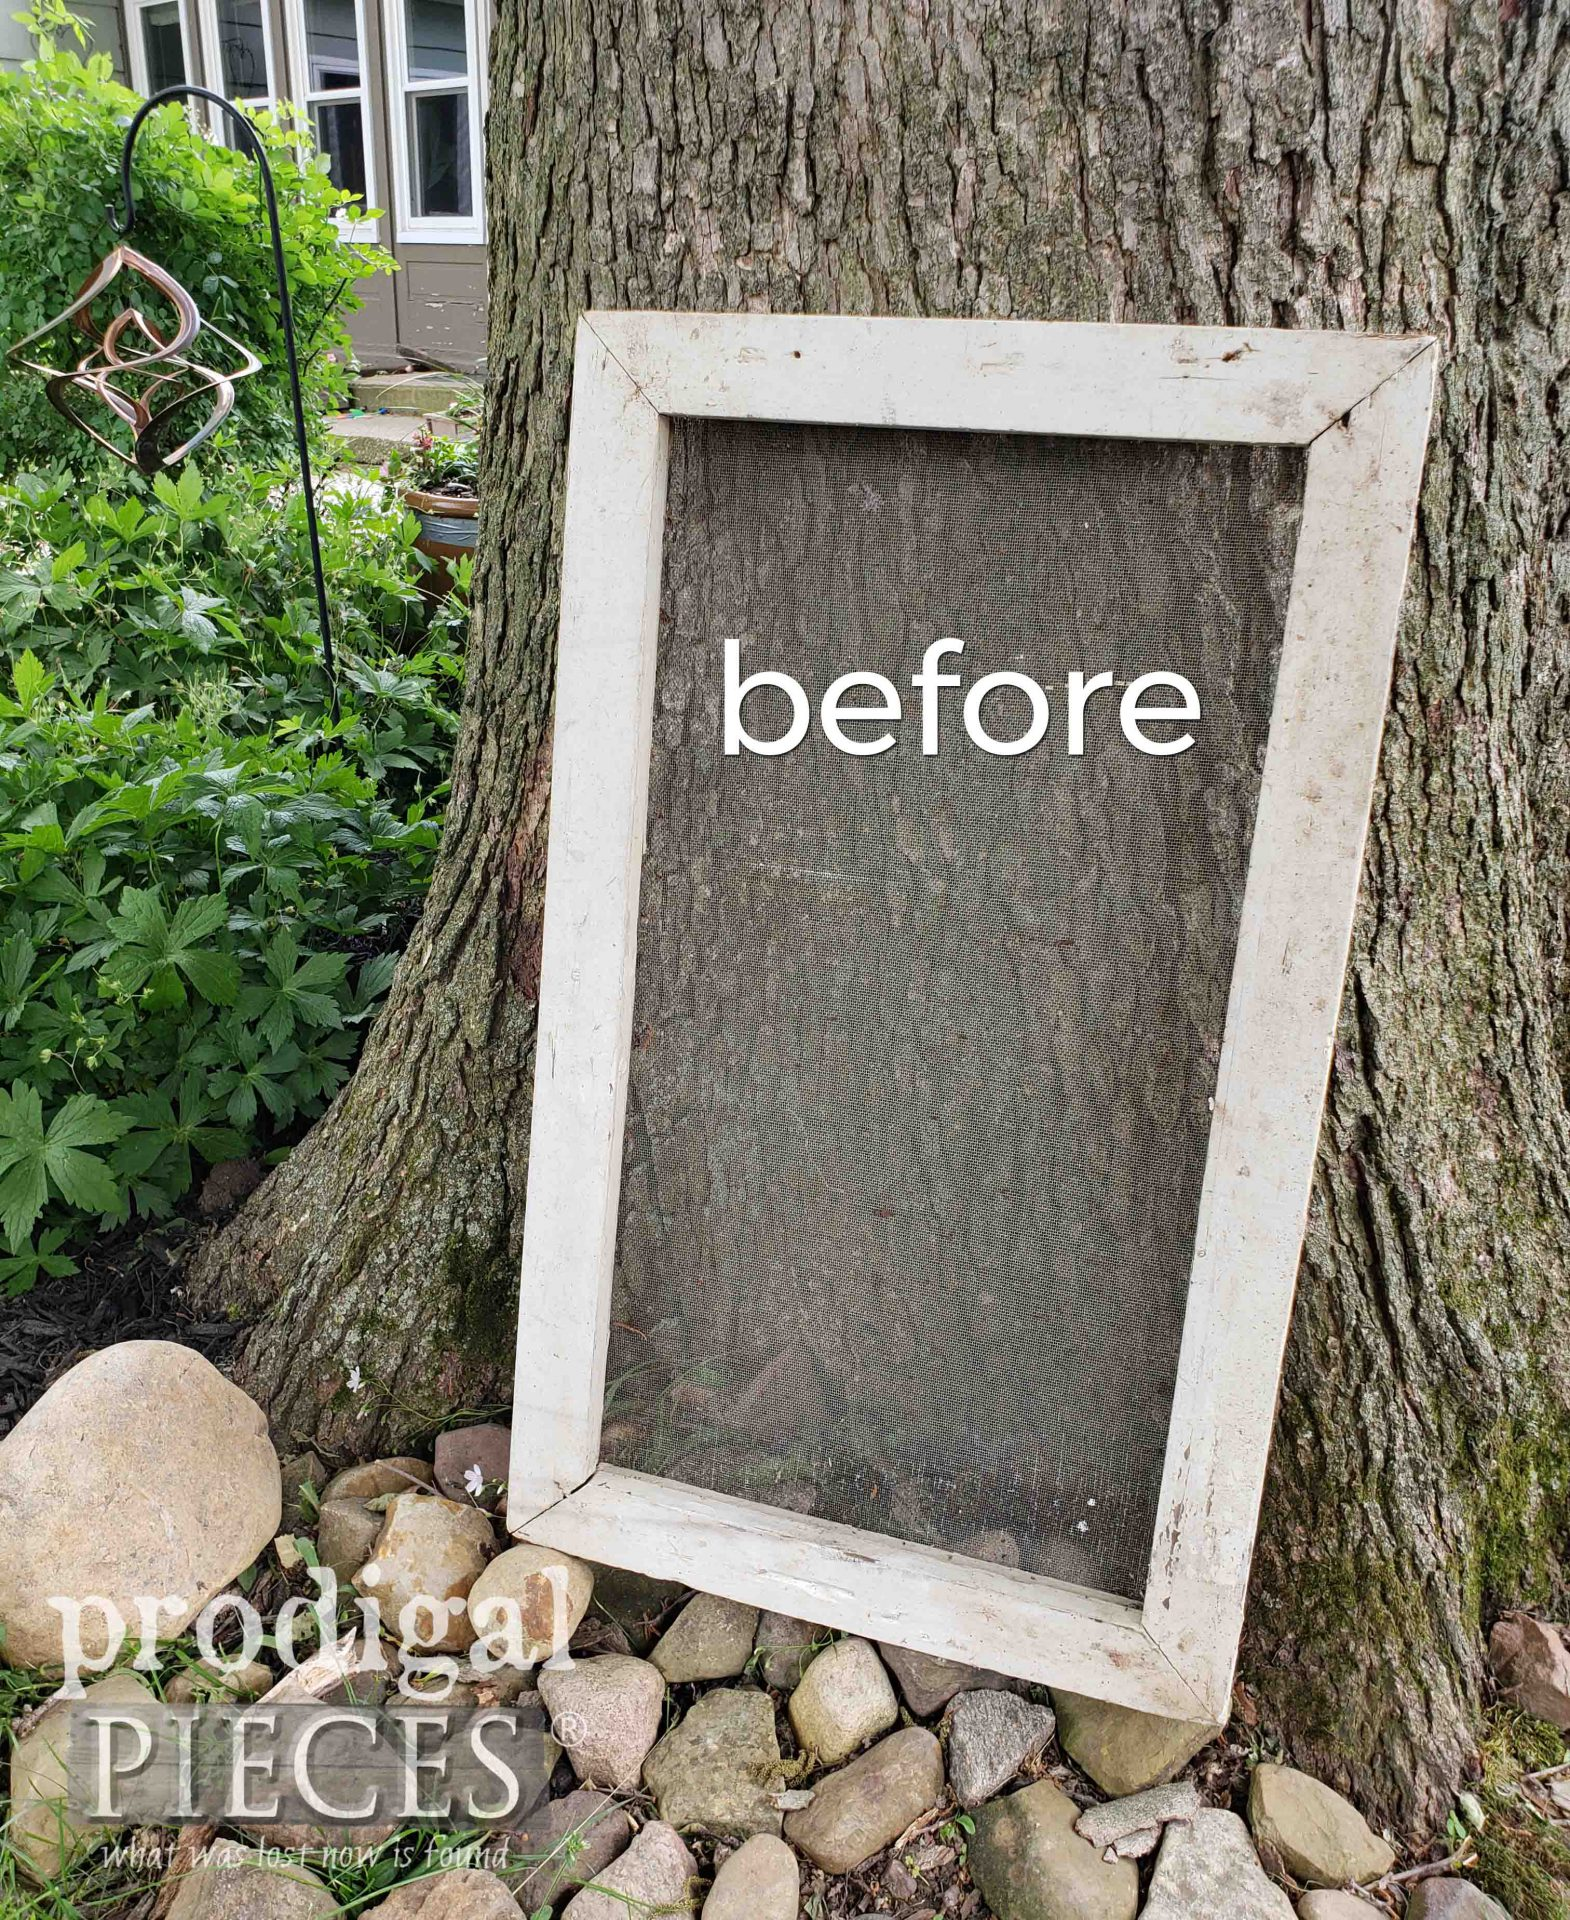 Garden Shed Screen Before Upcycle by Larissa of Prodigal Pieces | prodigalpieces.com #prodigalpieces